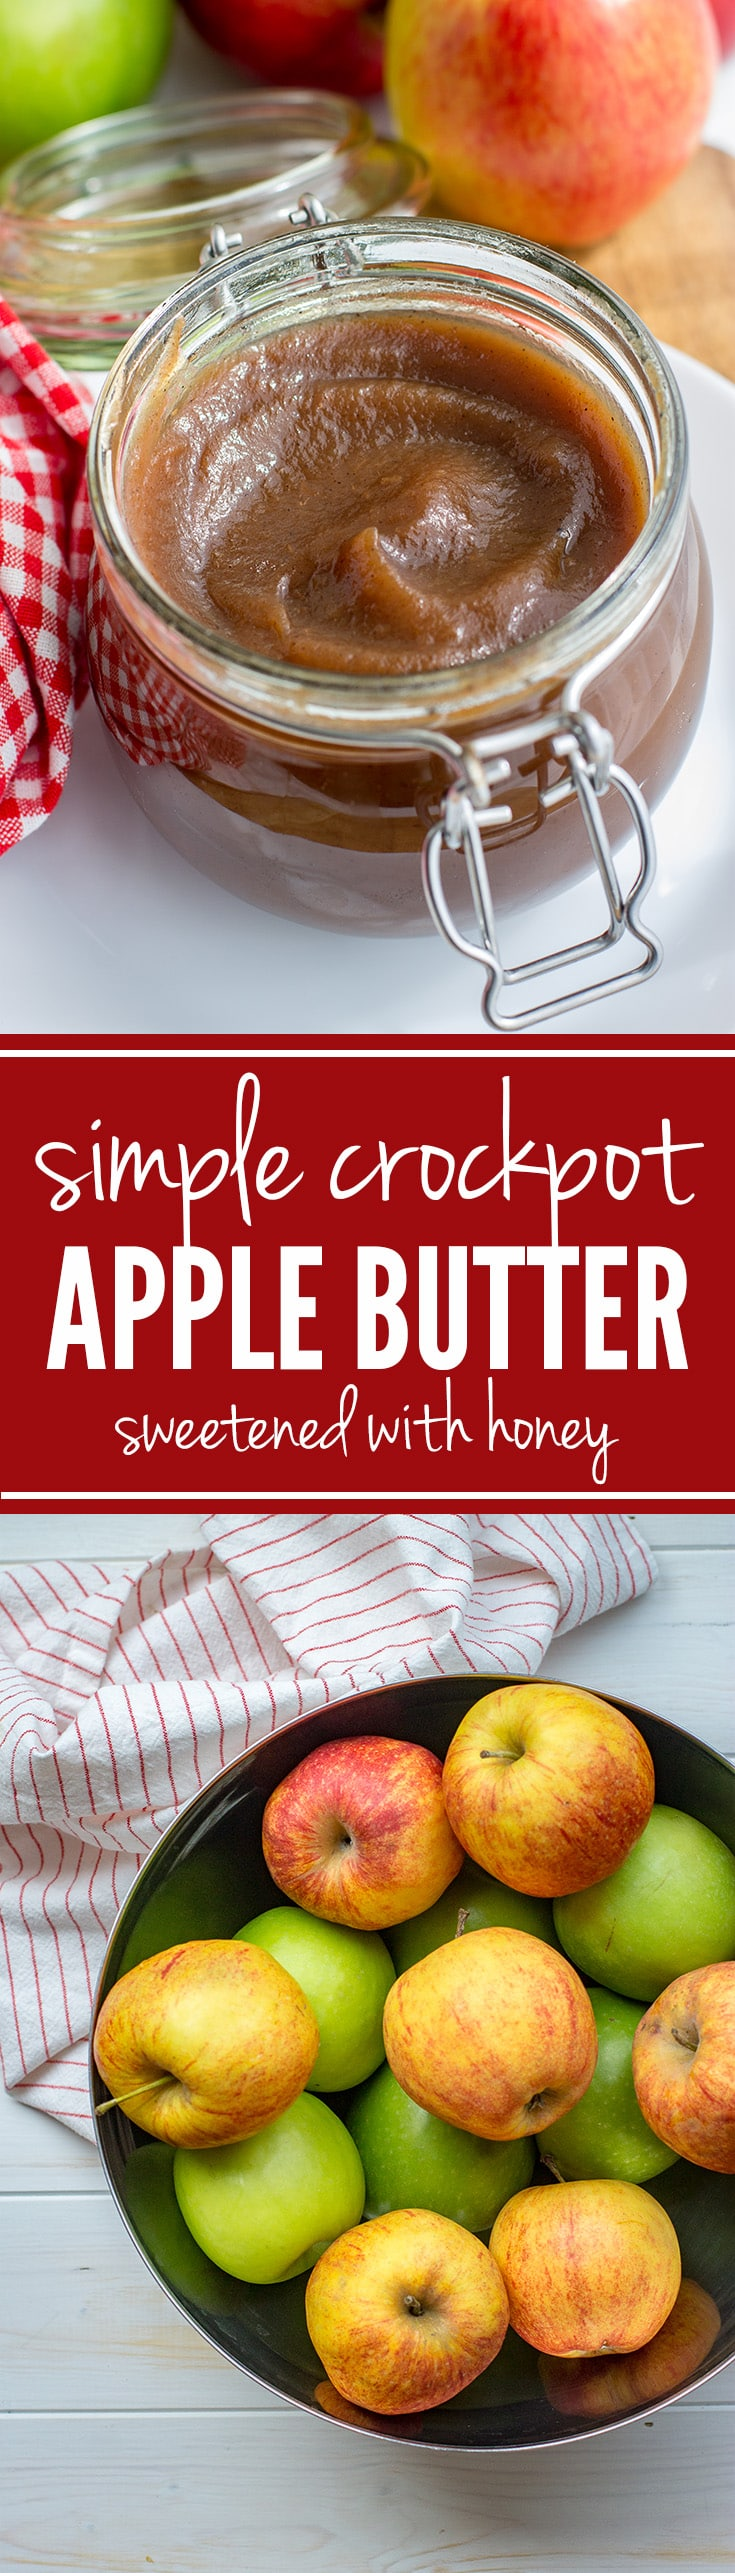 Crockpot apple butter sweetened with honey   Fall baking starts with this amazing homemade apple butter, made in the slow cooker, sweetened with honey. #applebutter #fallbaking #crockpot